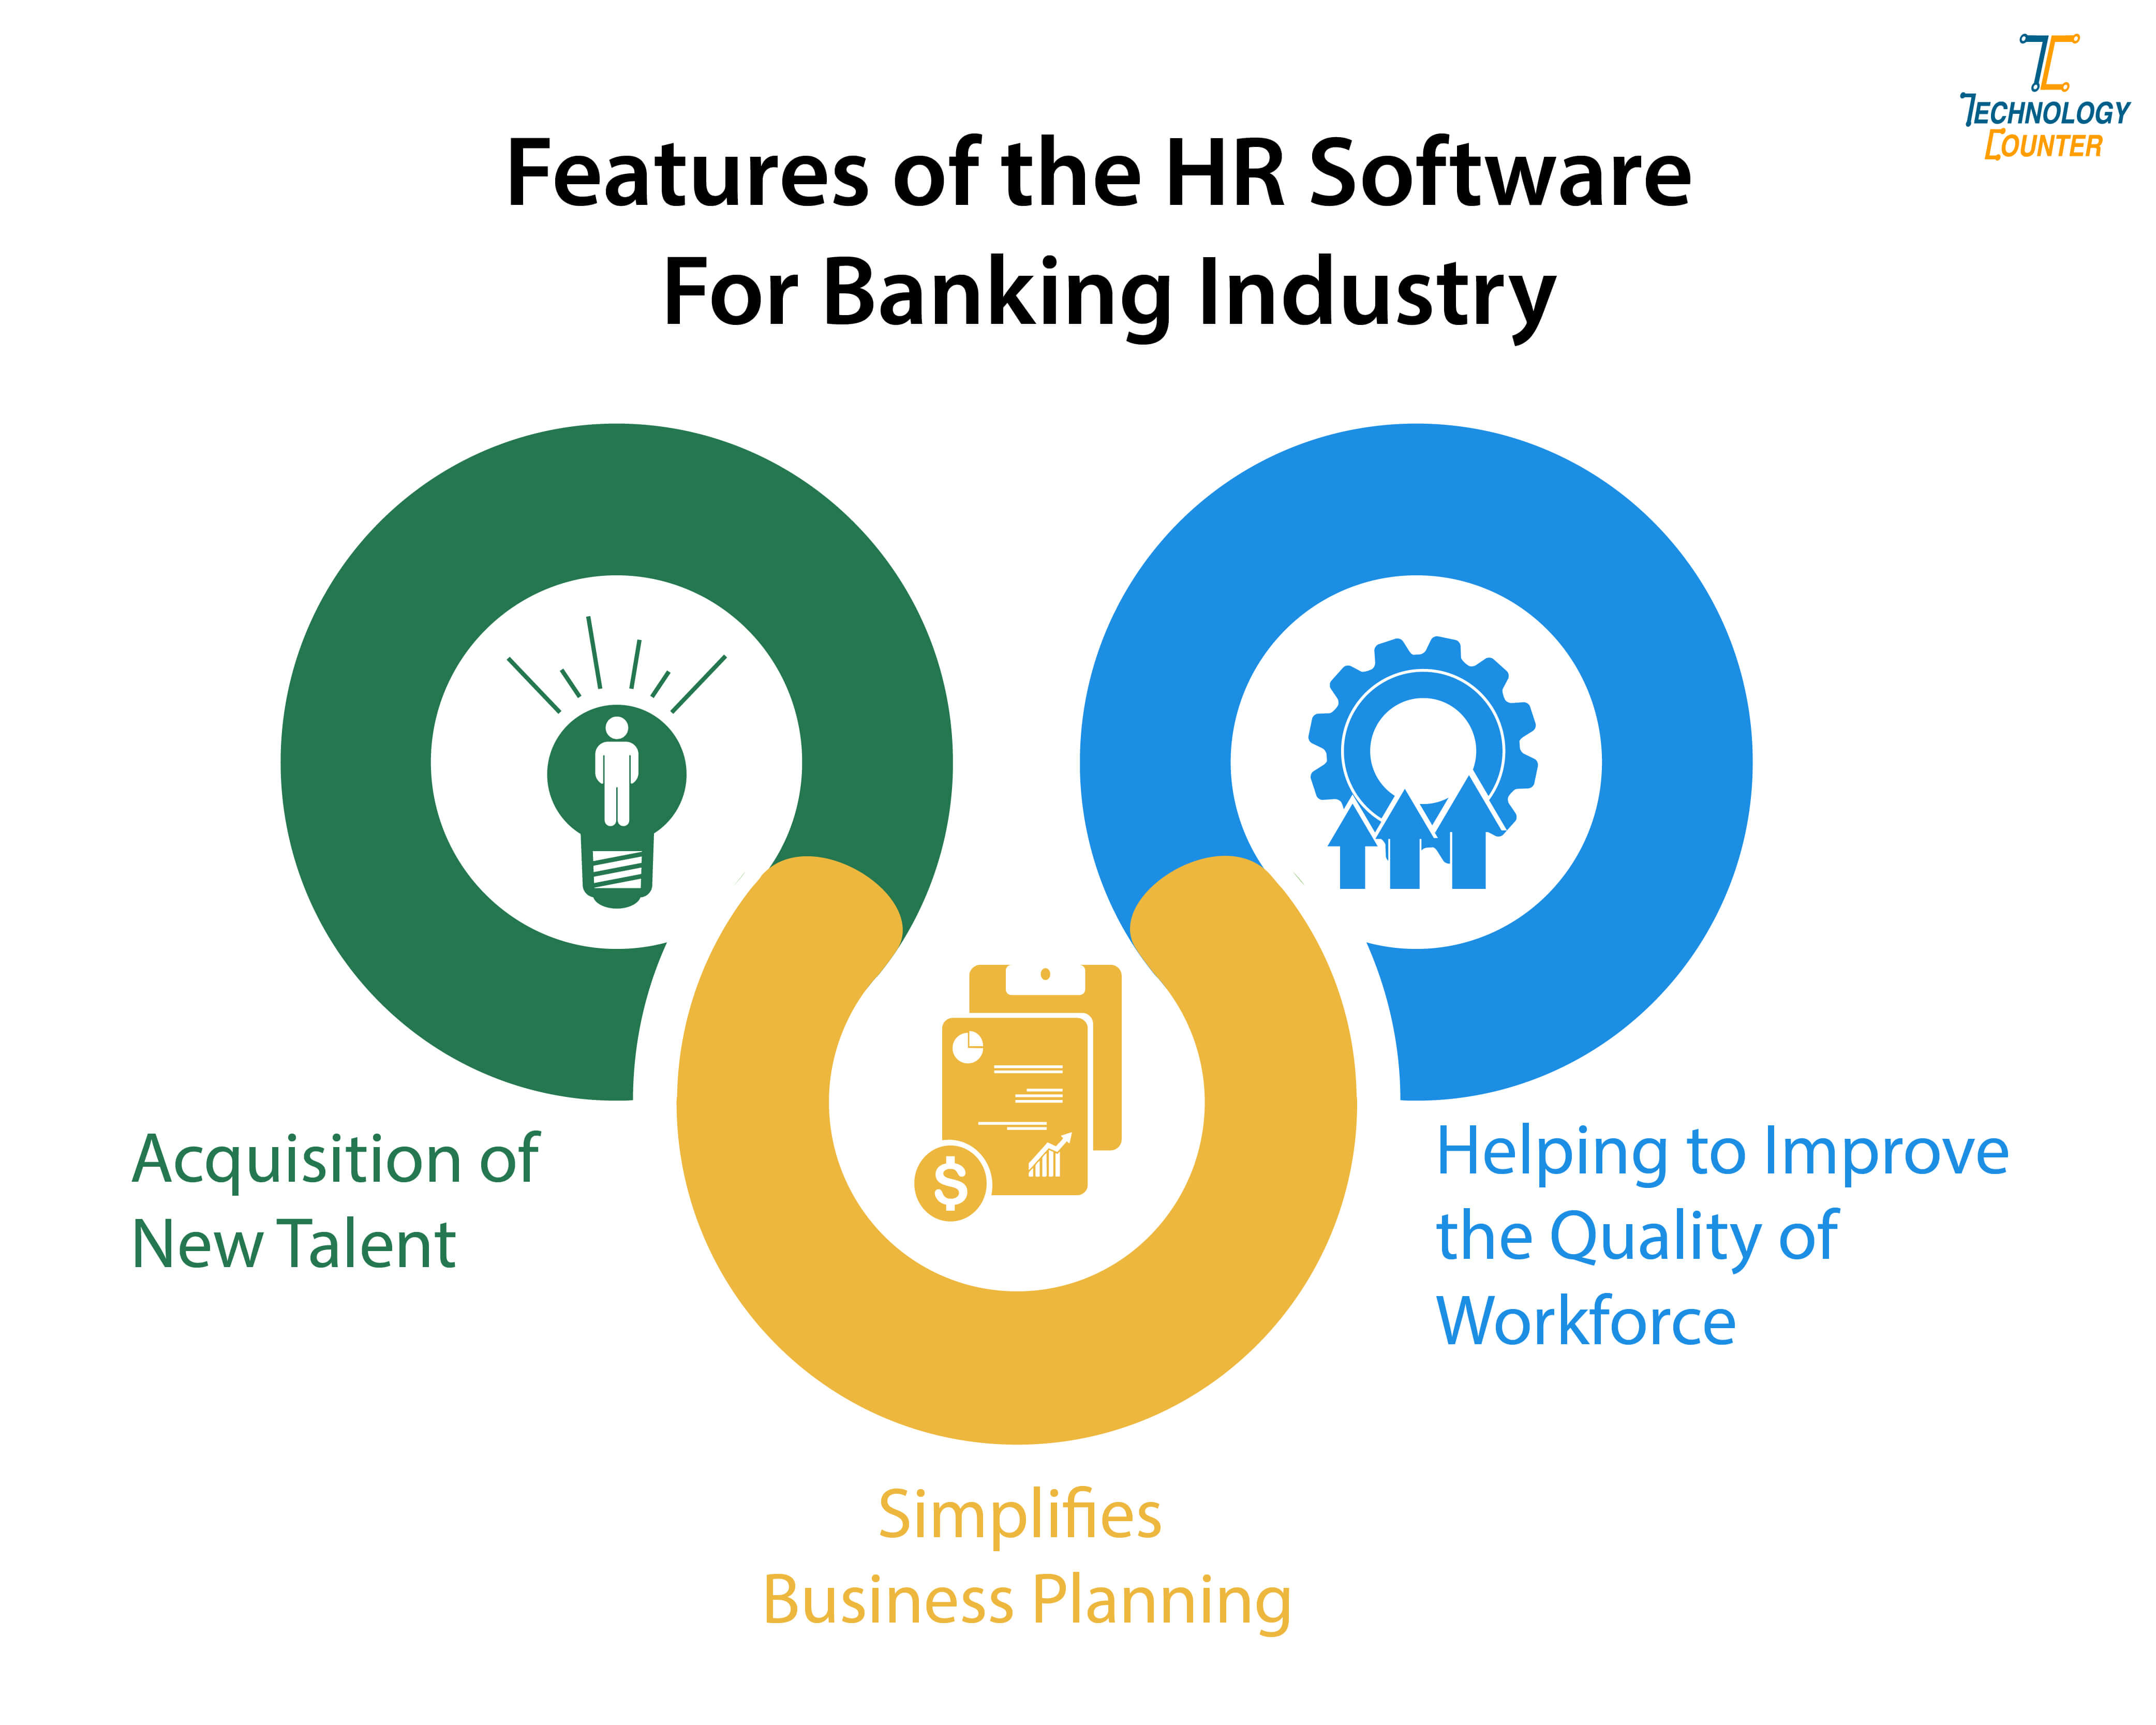 Features of the HR software for Banking Industry